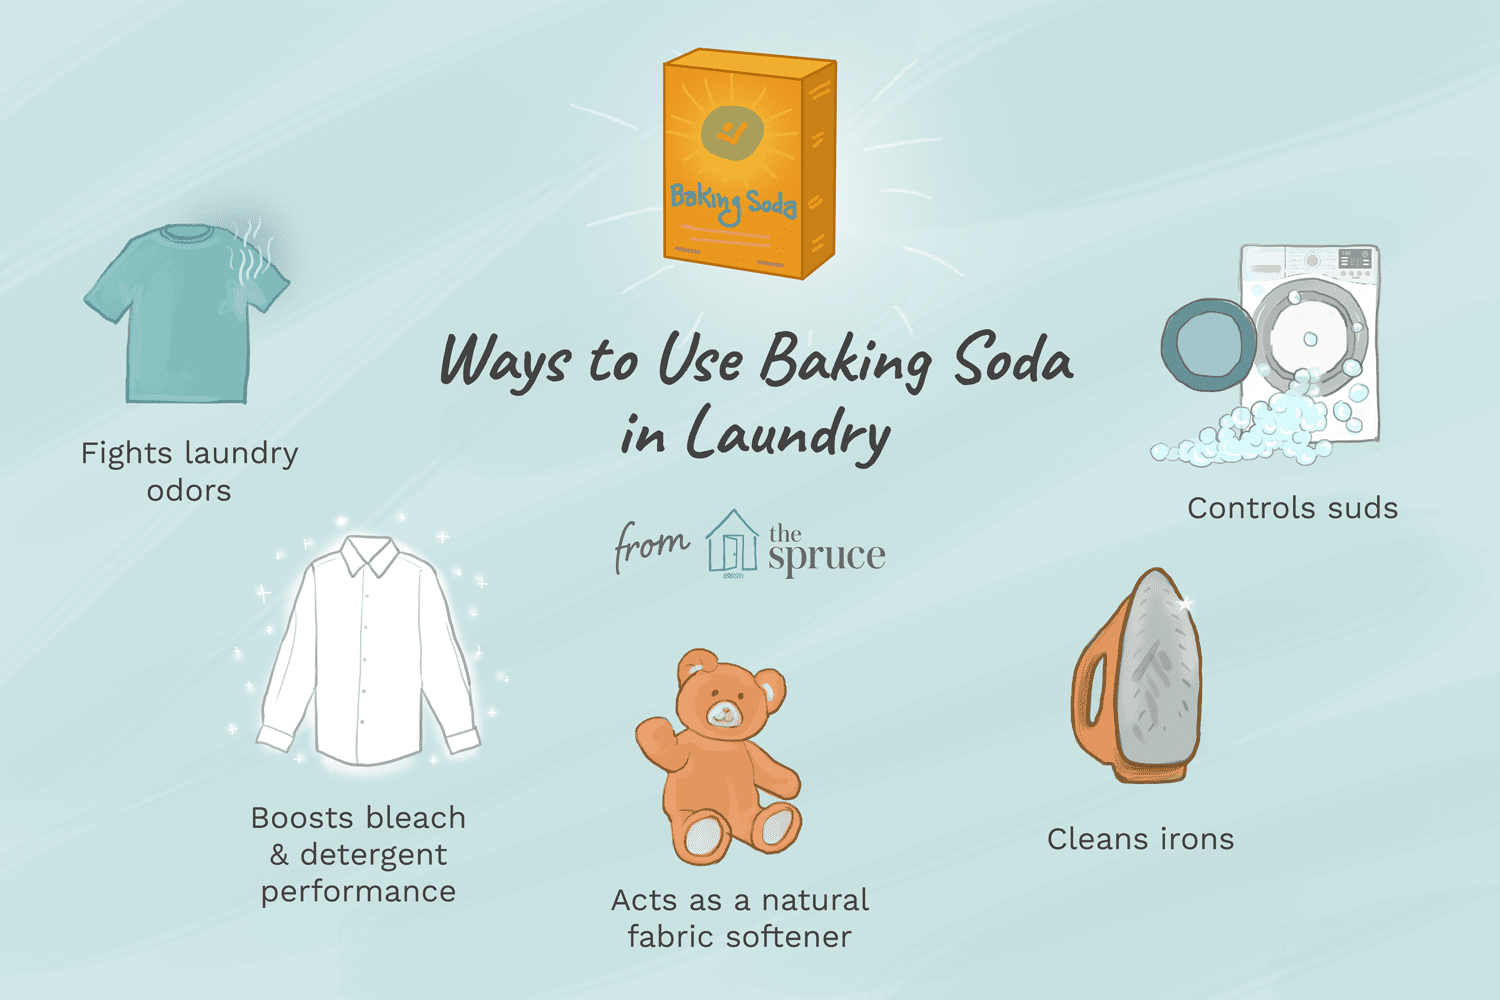 How To Use Baking Soda In Laundry